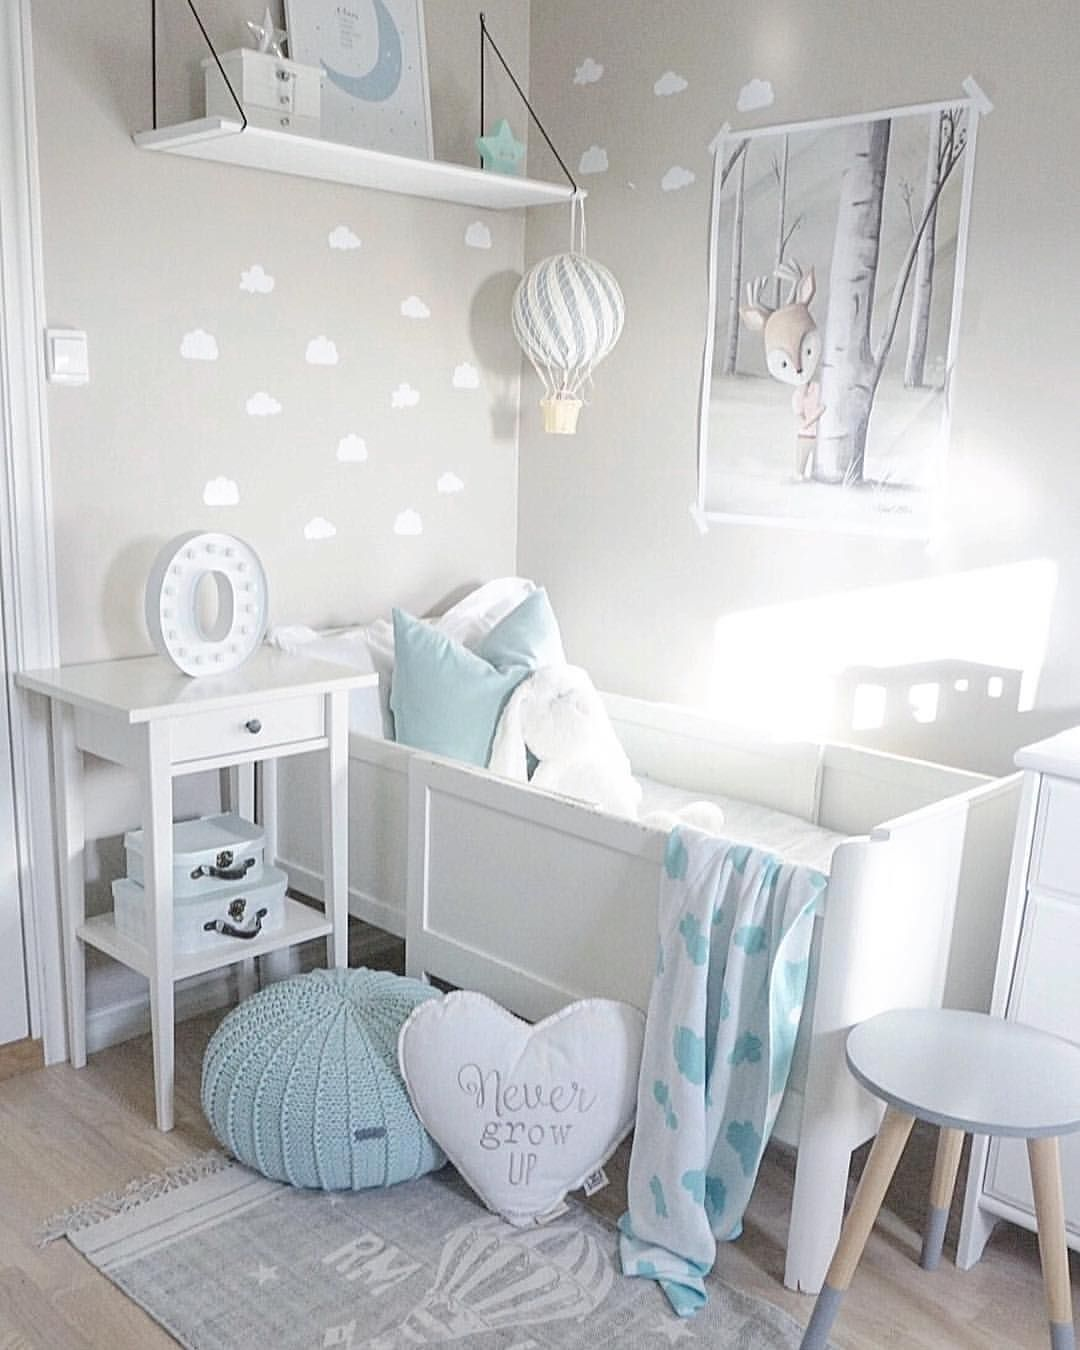 Schlafzimmer Inspiration Instagram Inspiration From Instagram Light Grey And Blue Nursery